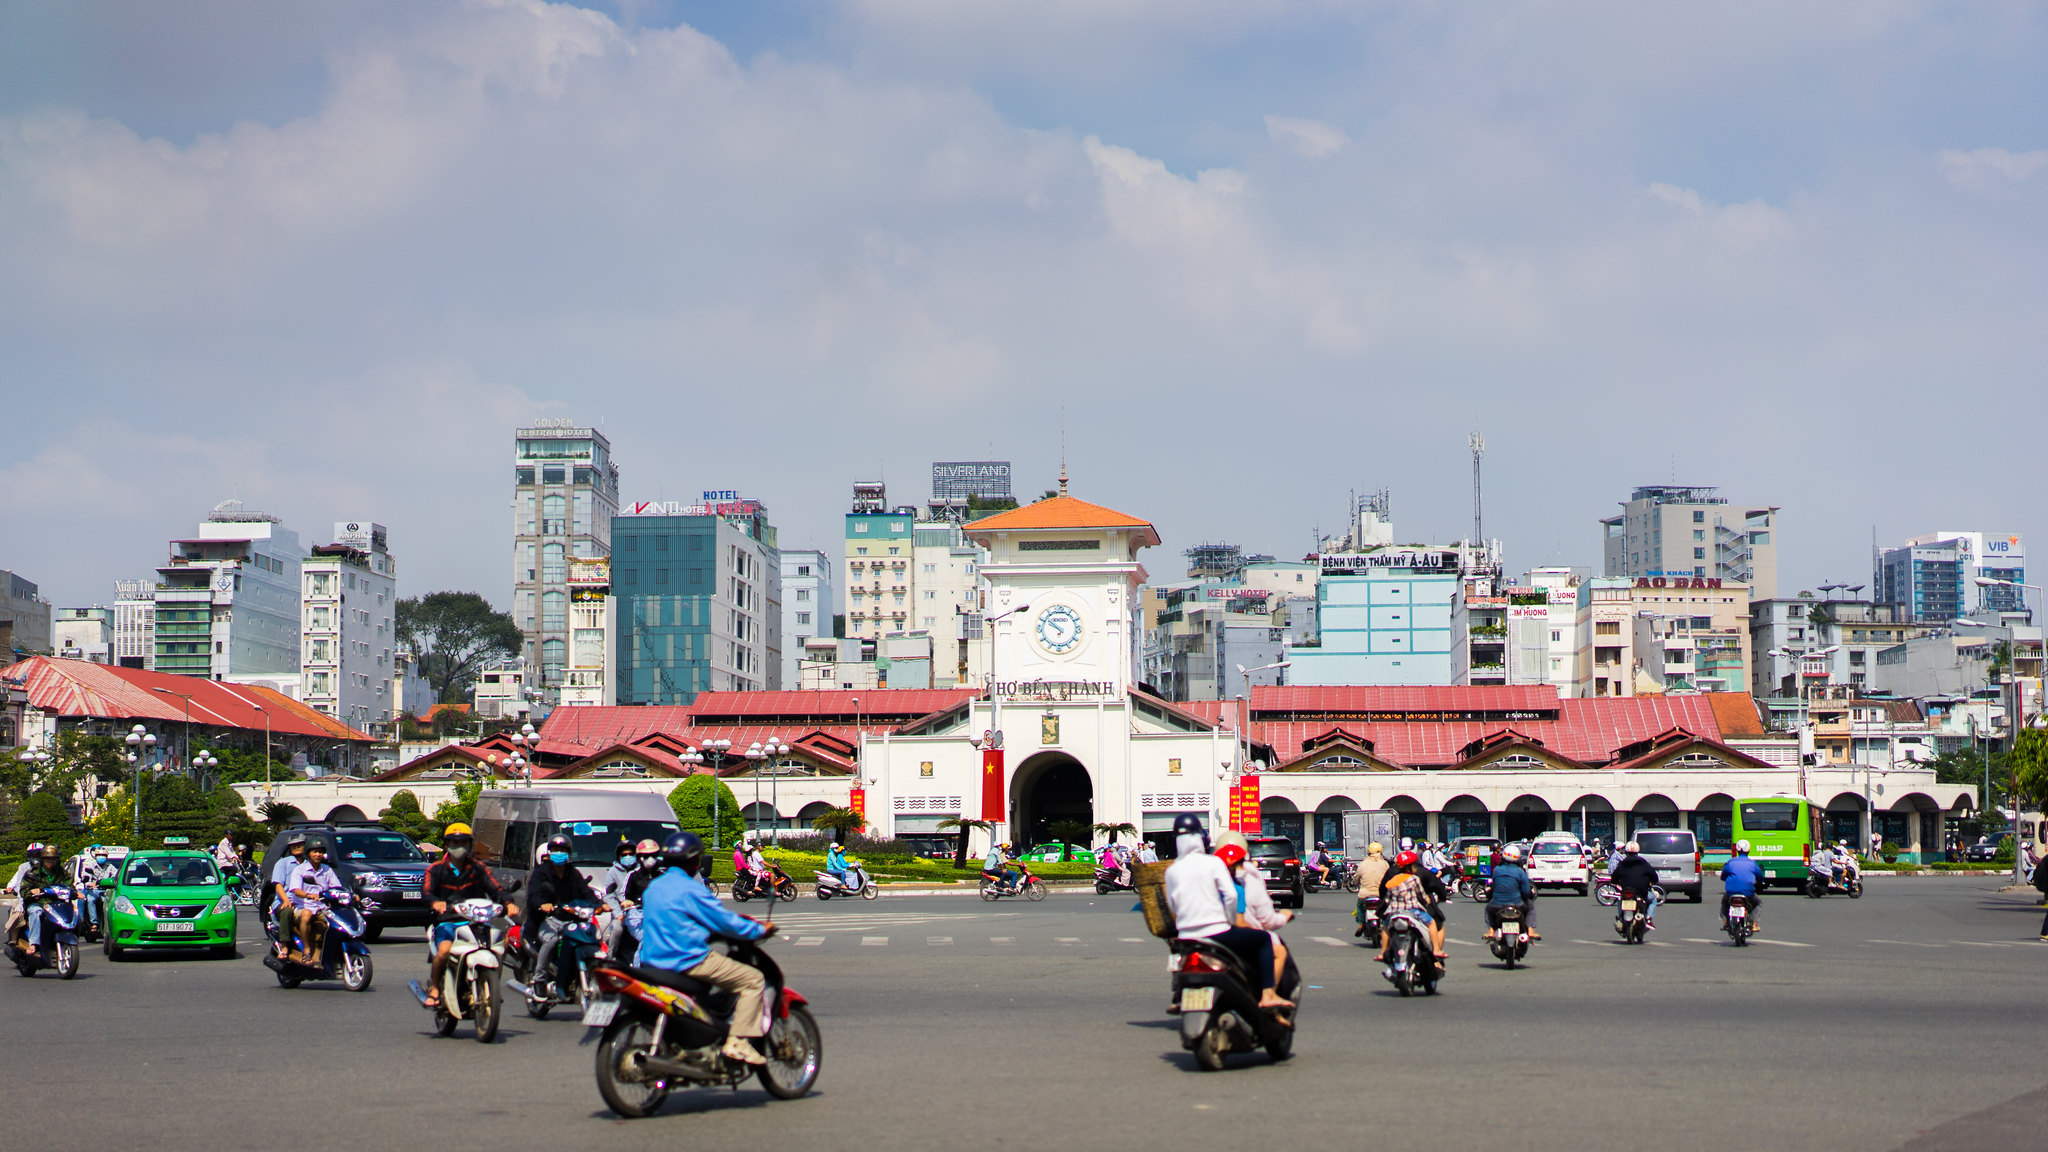 10 Things To Do In Ho Chi Minh City, Vietnam